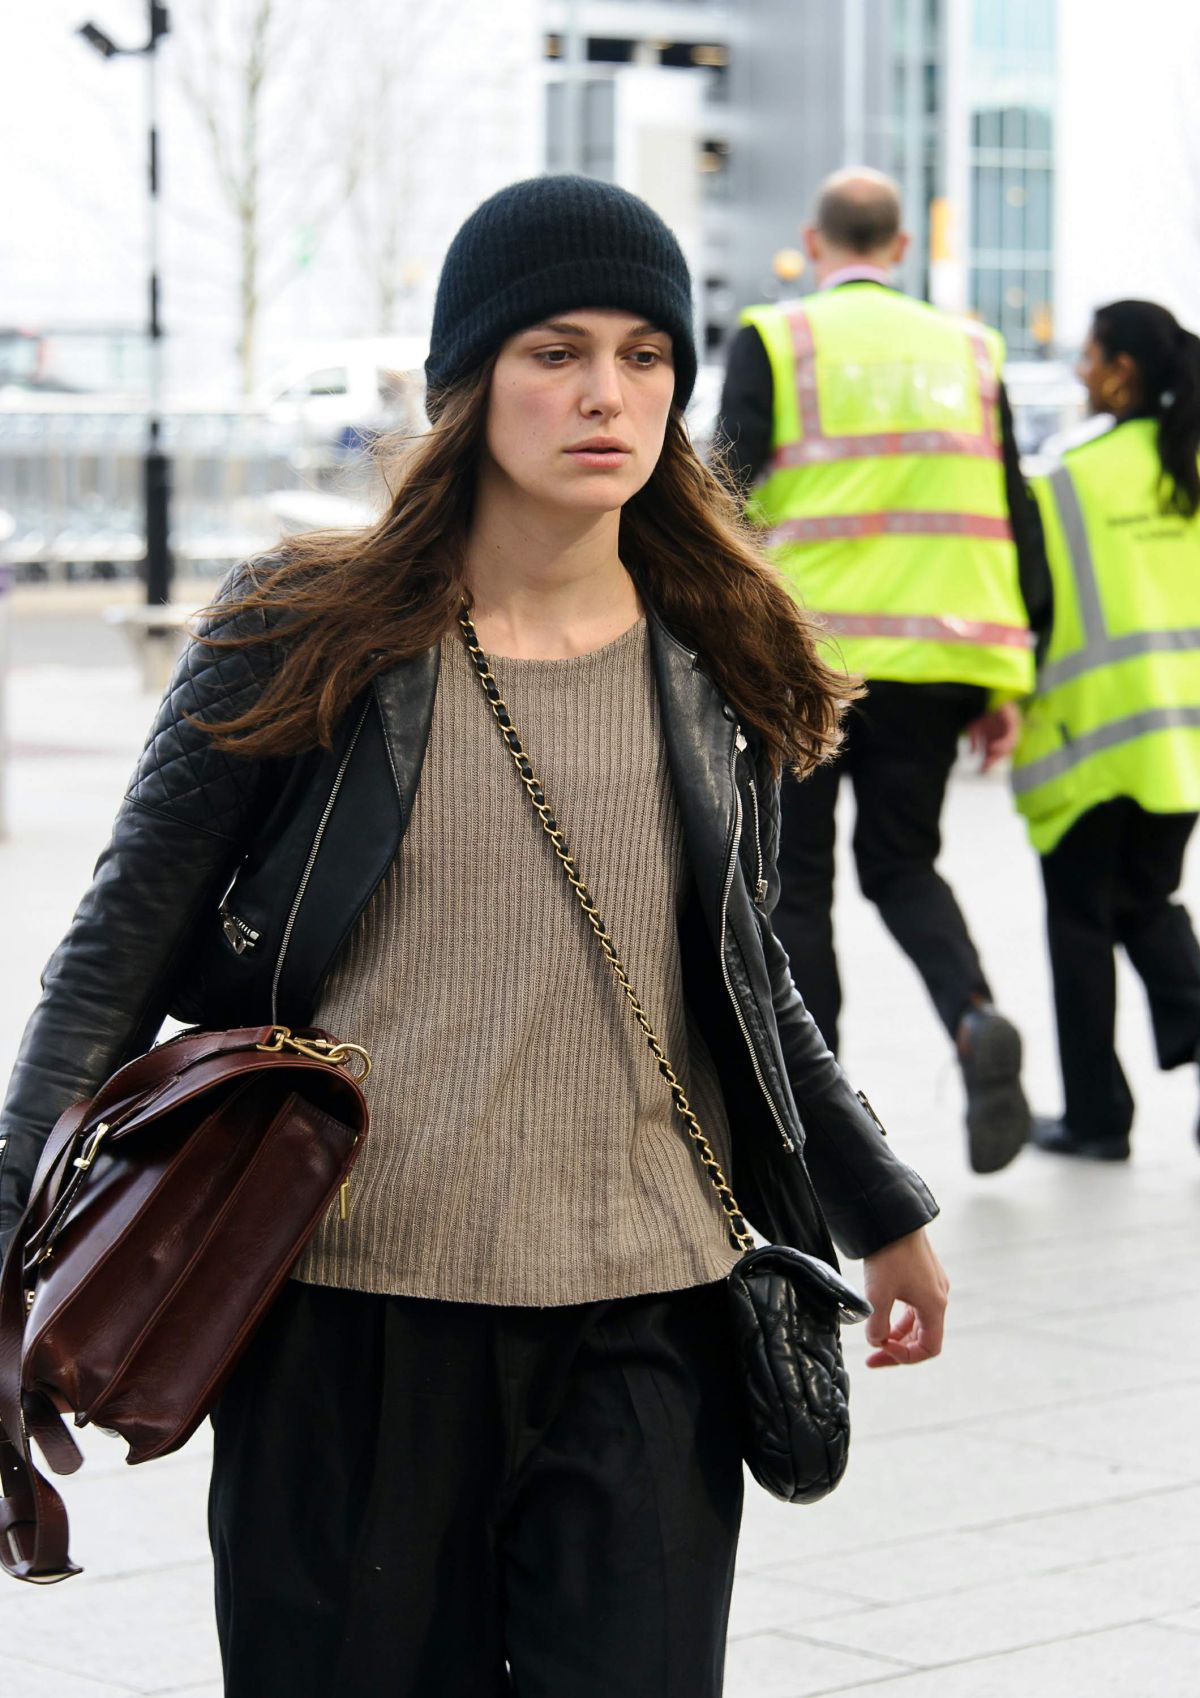 KEIRA KNIGHTLEY Arrives at Heathrow Airport to New York 04/02/2016 Keira Knightley